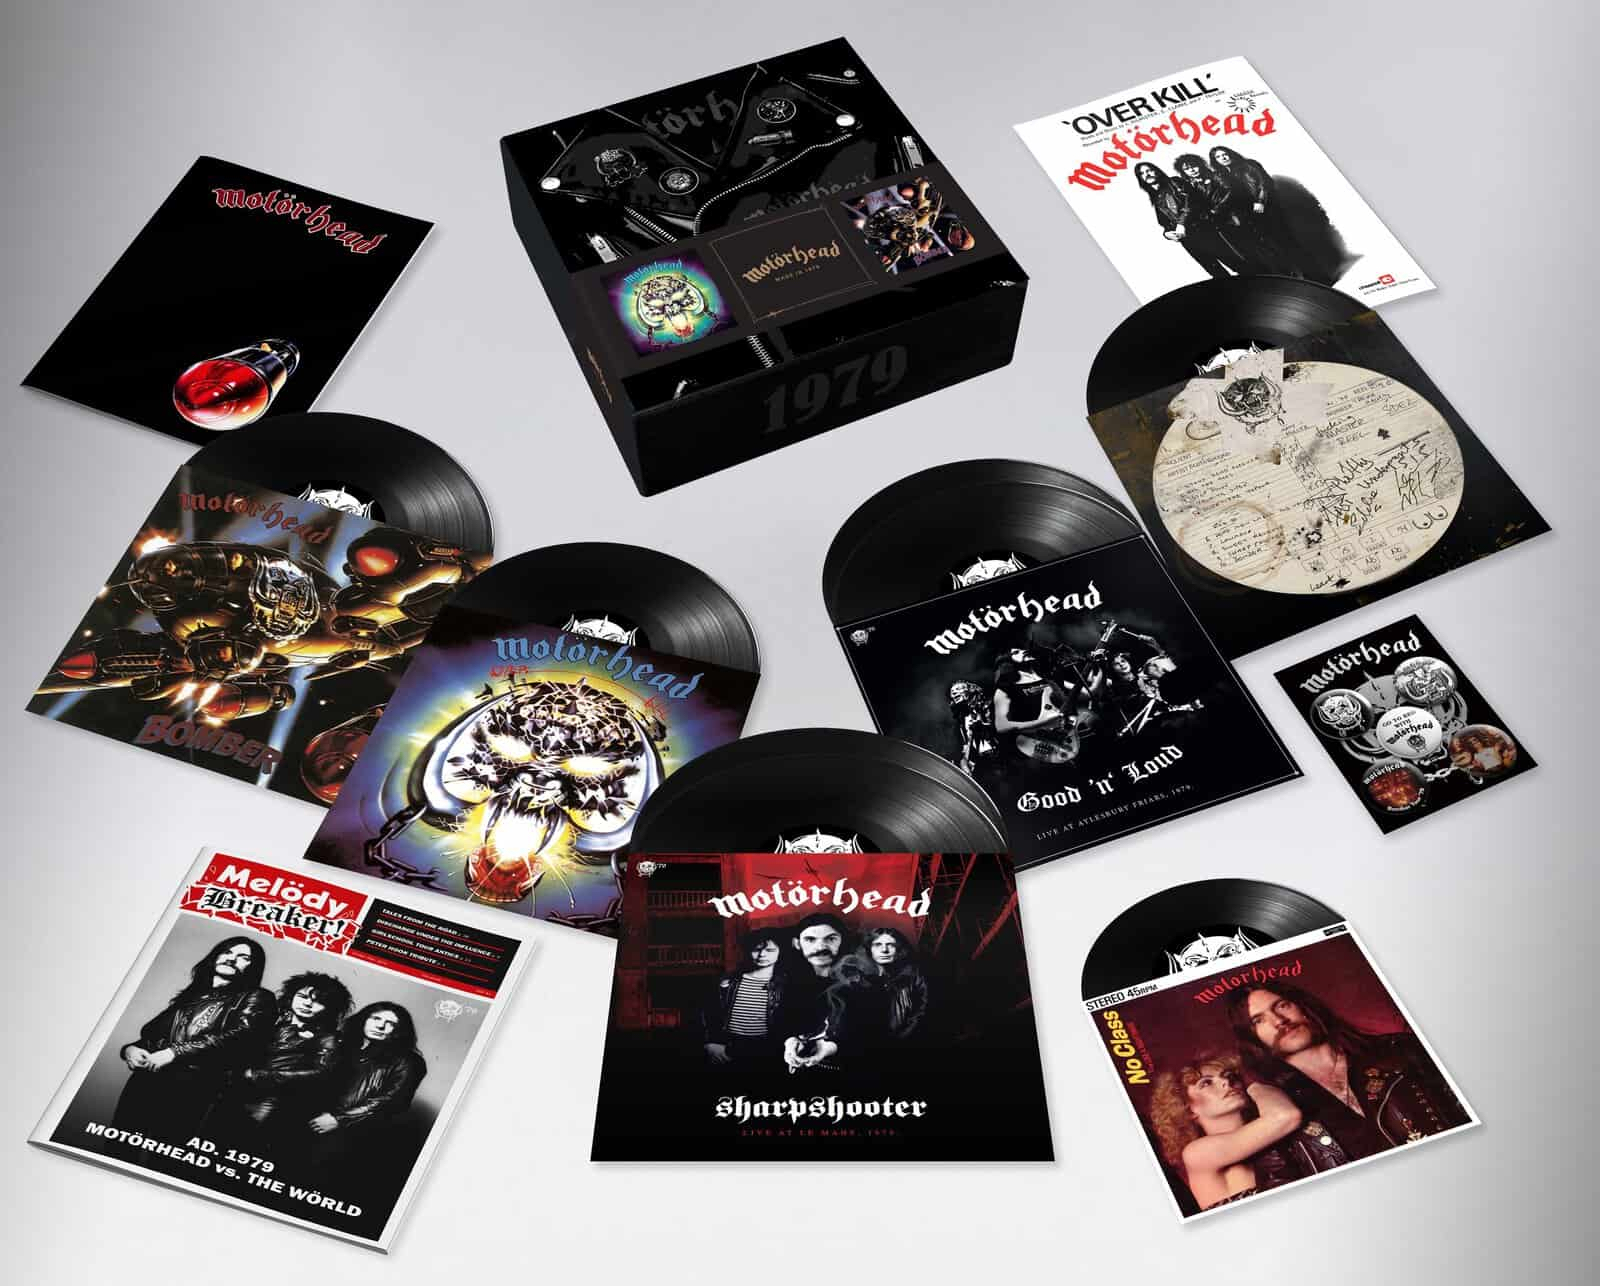 News – Motörhead 1979 box set